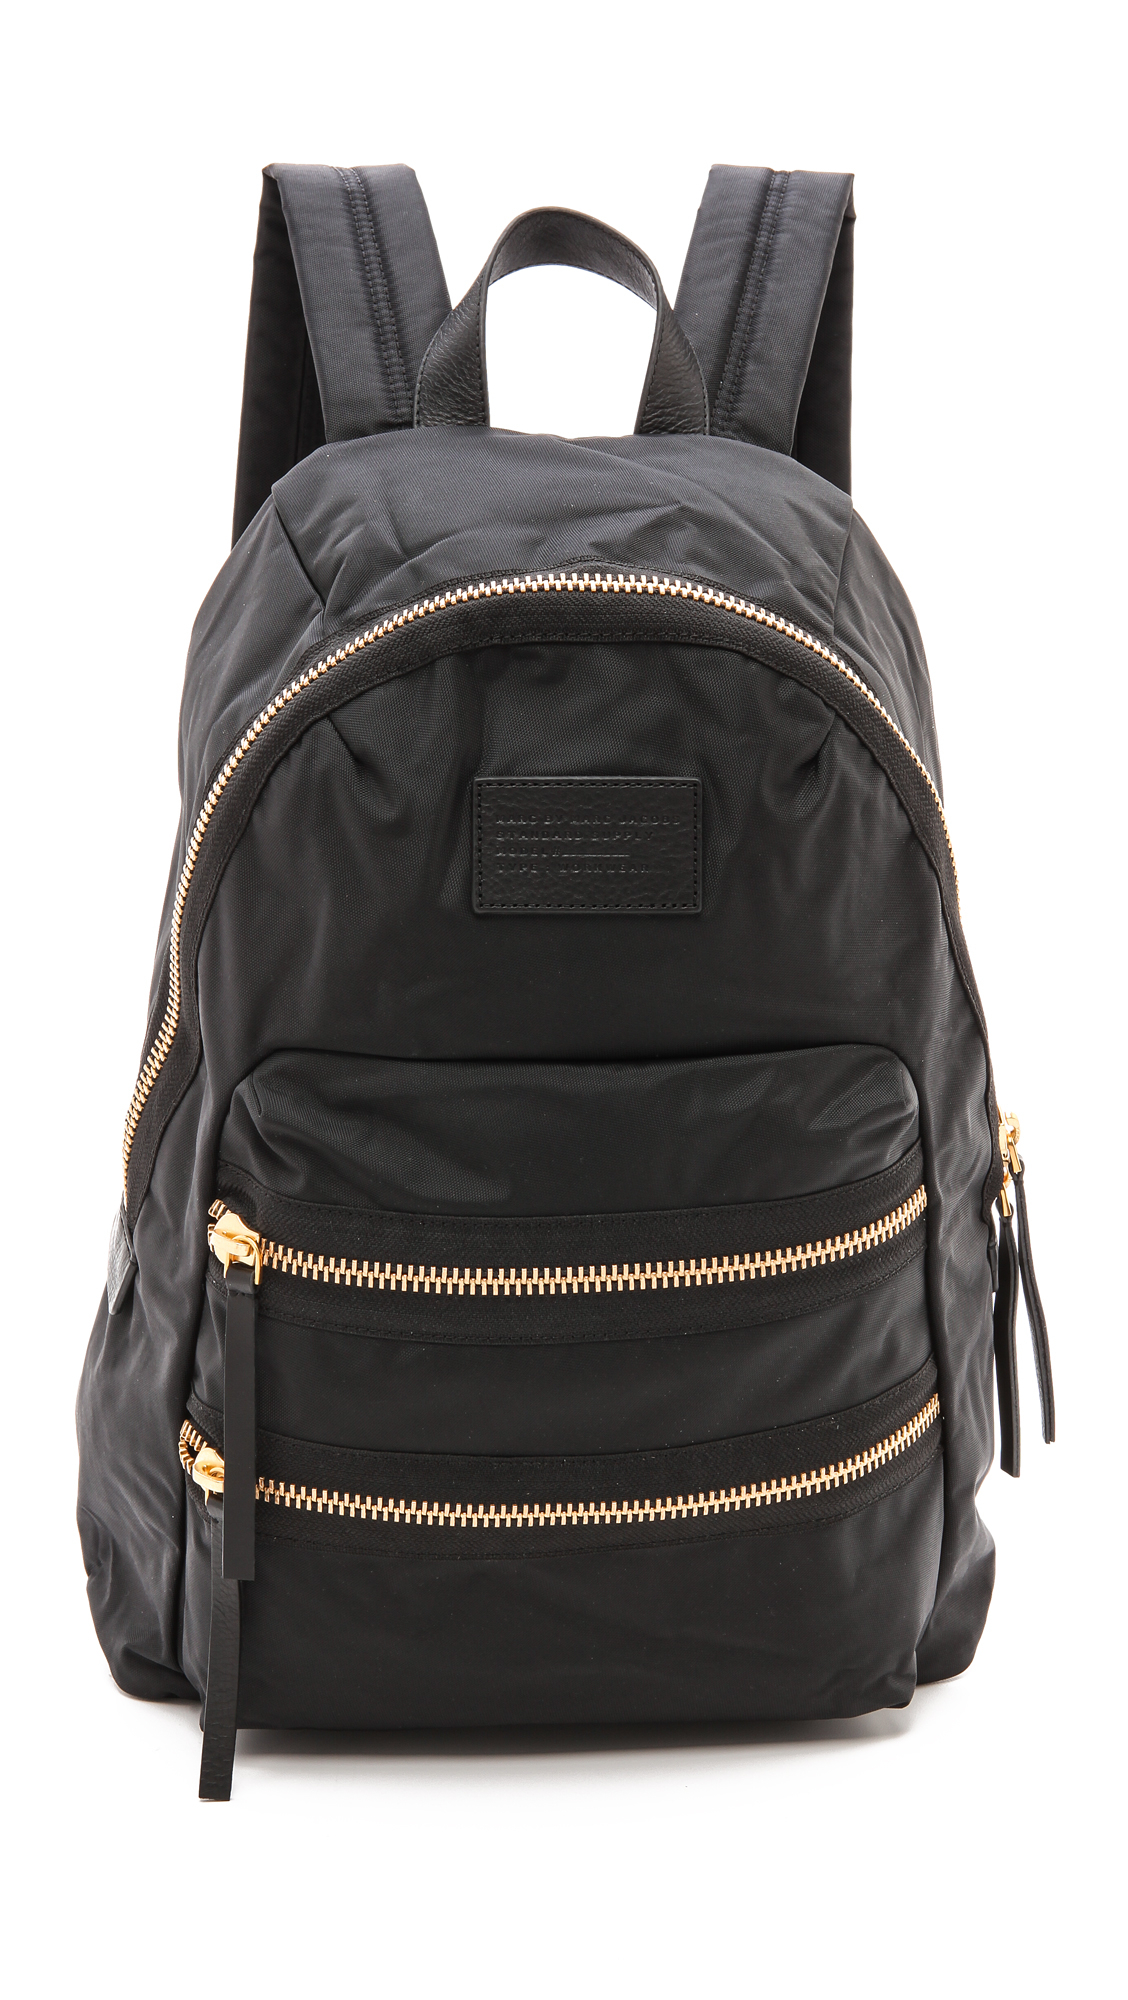 Backpack Black Marc By Marc Jacobs Loco Domo Packrat Backpack In Black Lyst